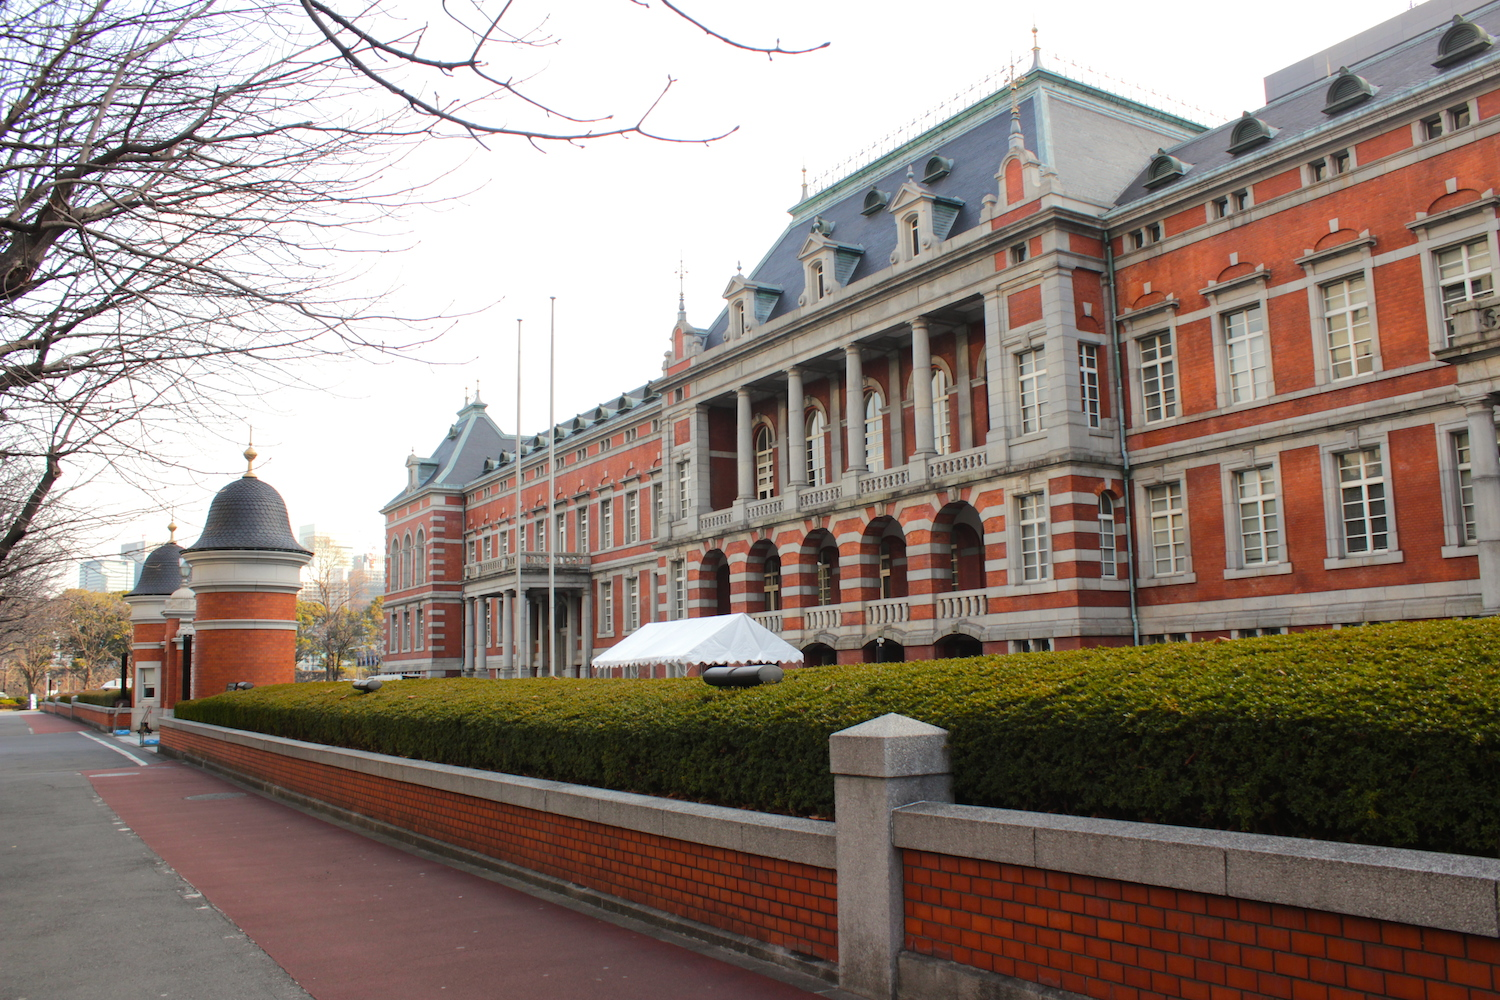 The Ministry Of Justice Building In Chiyoda Is A Classic Red Brick Style Meiji